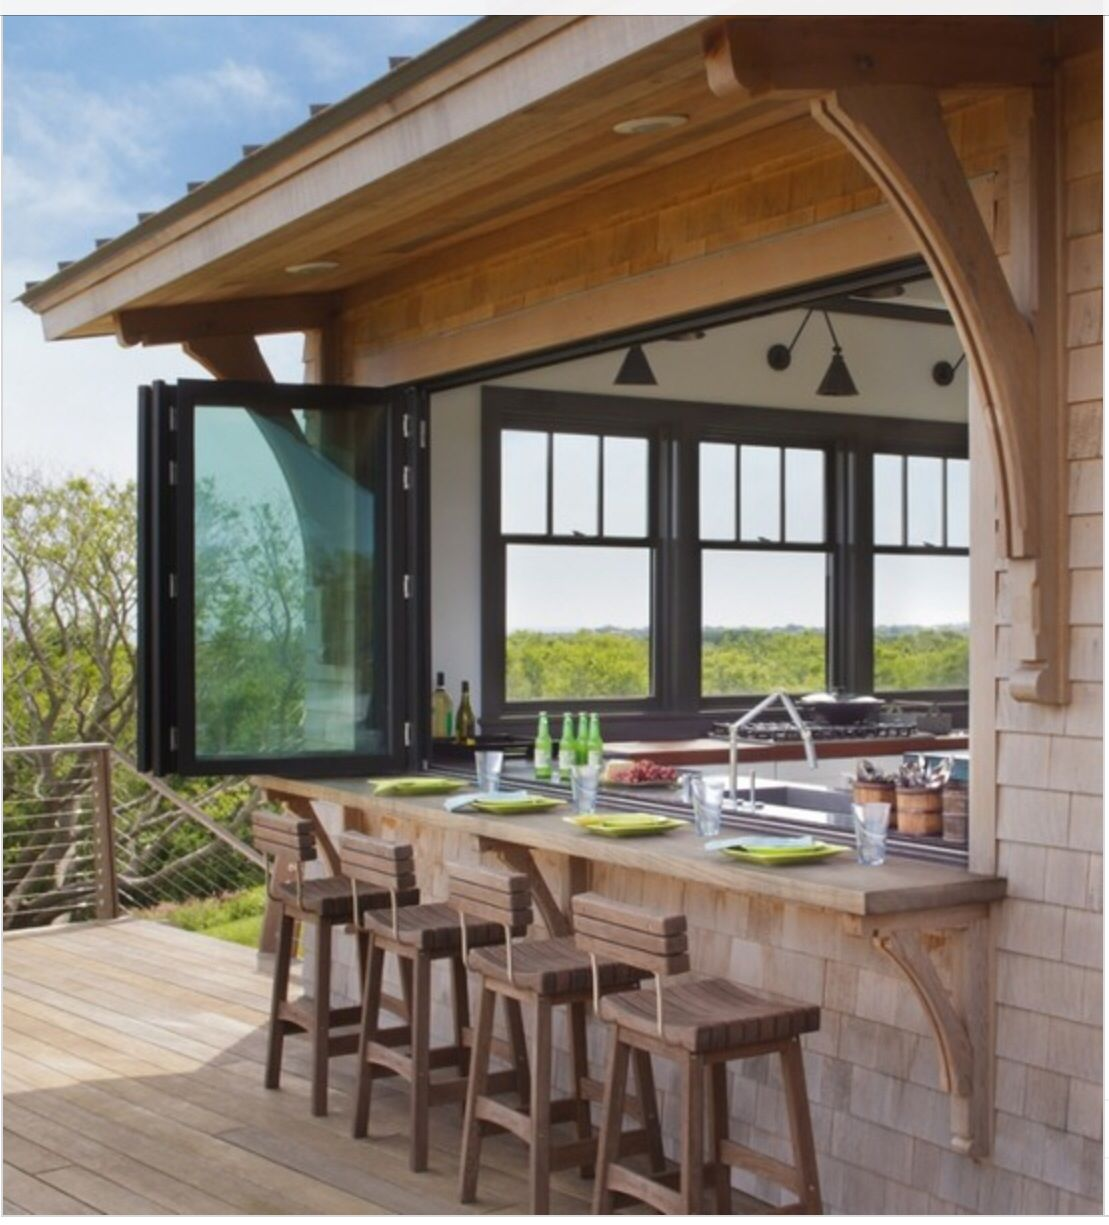 Pin by zenyclaire on soonerthansoon pinterest decking house and